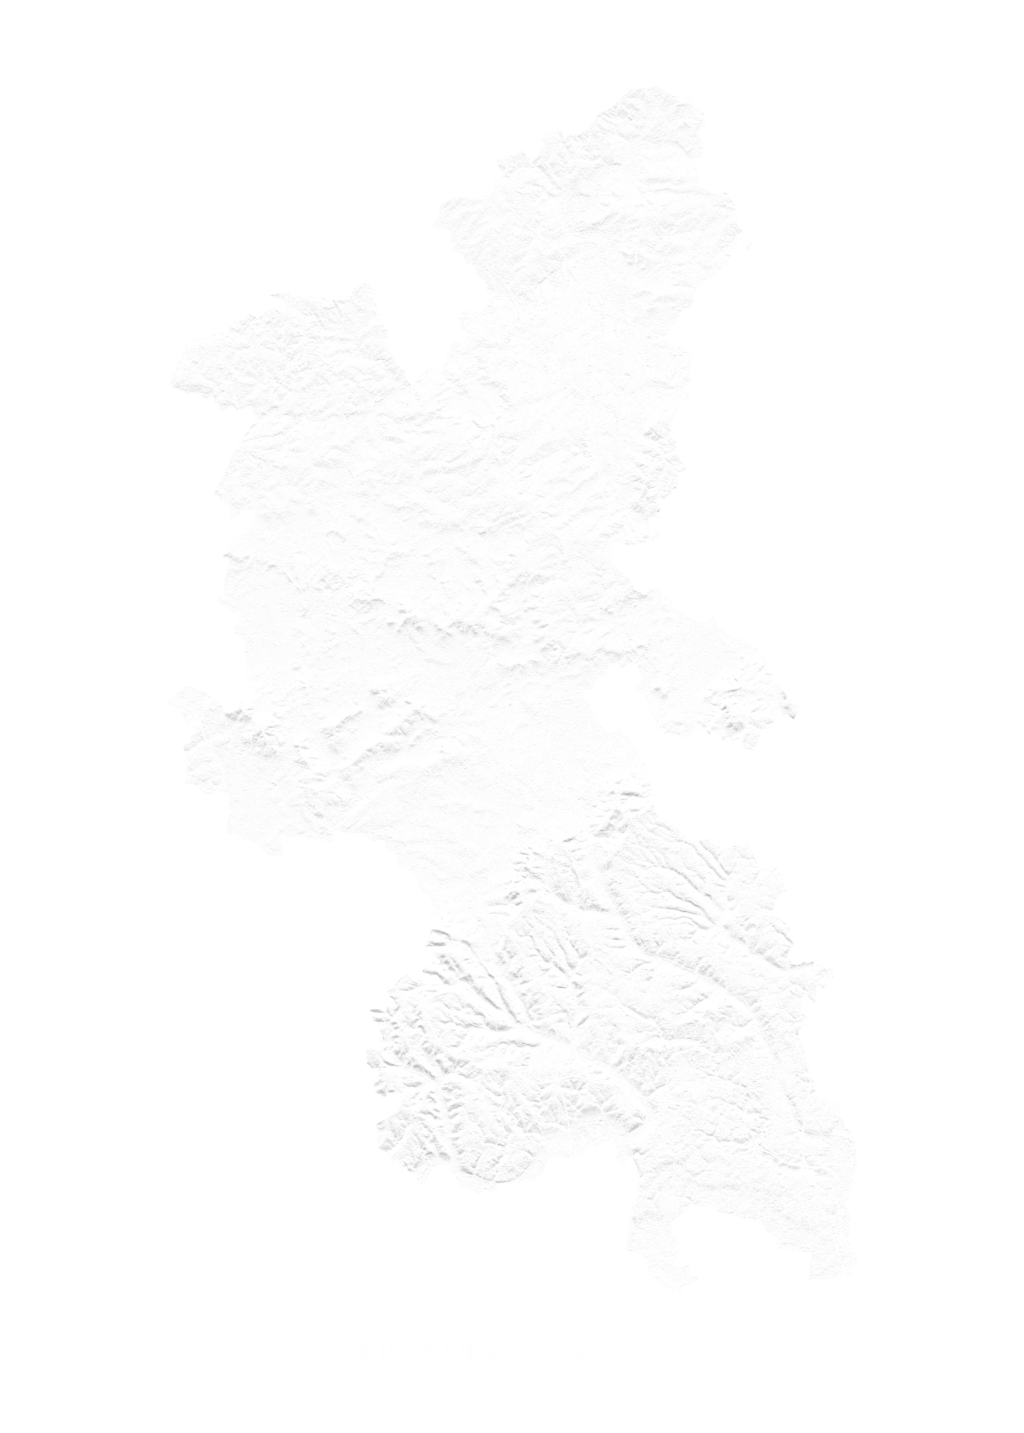 Buckinghamshire wall map